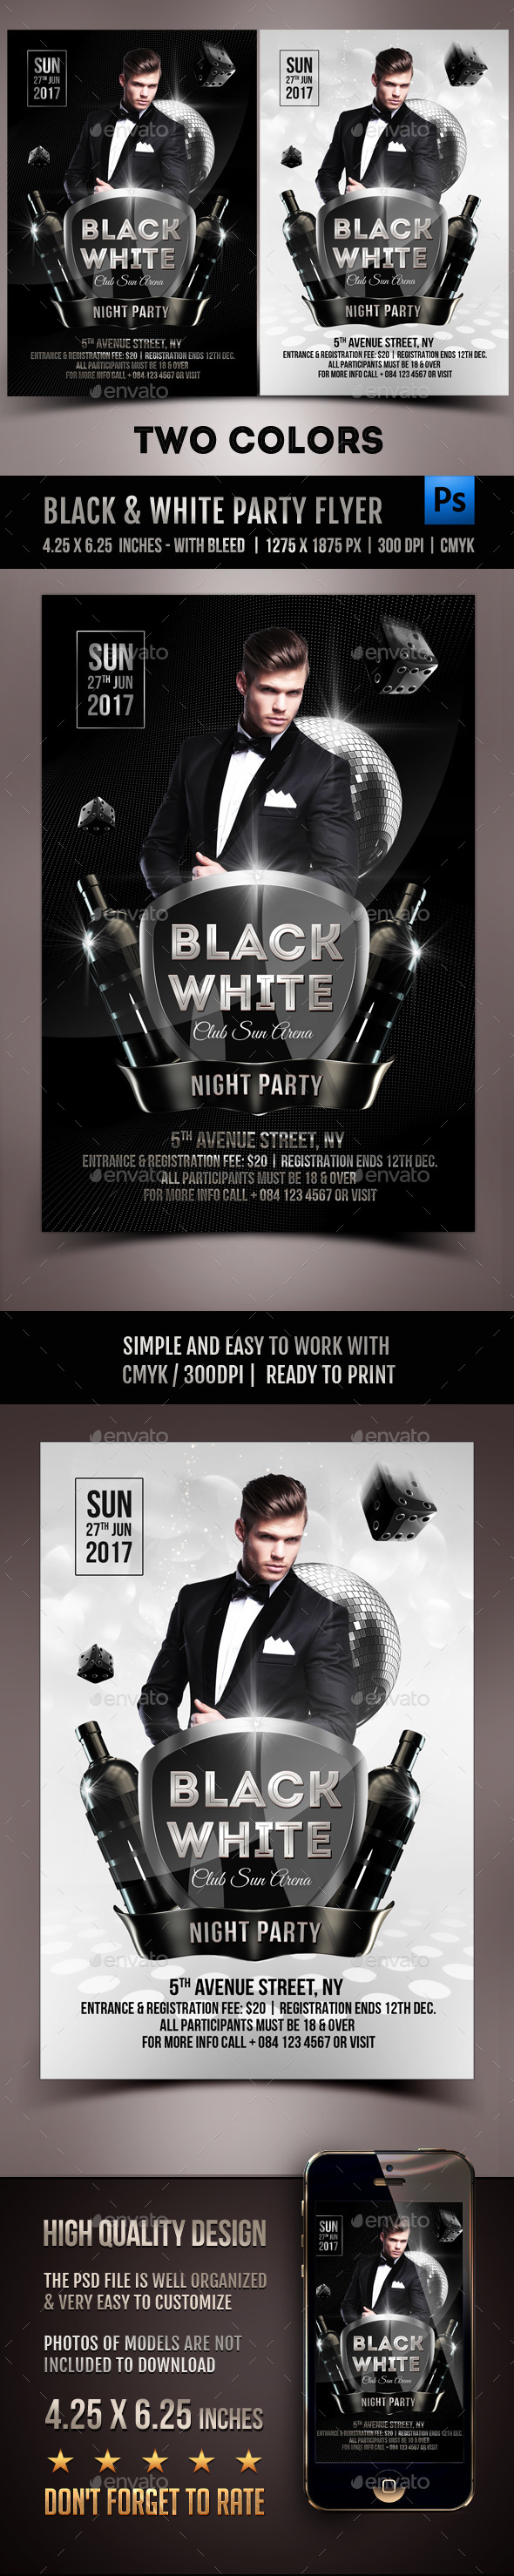 Black & White Party Flyer - Clubs & Parties Events